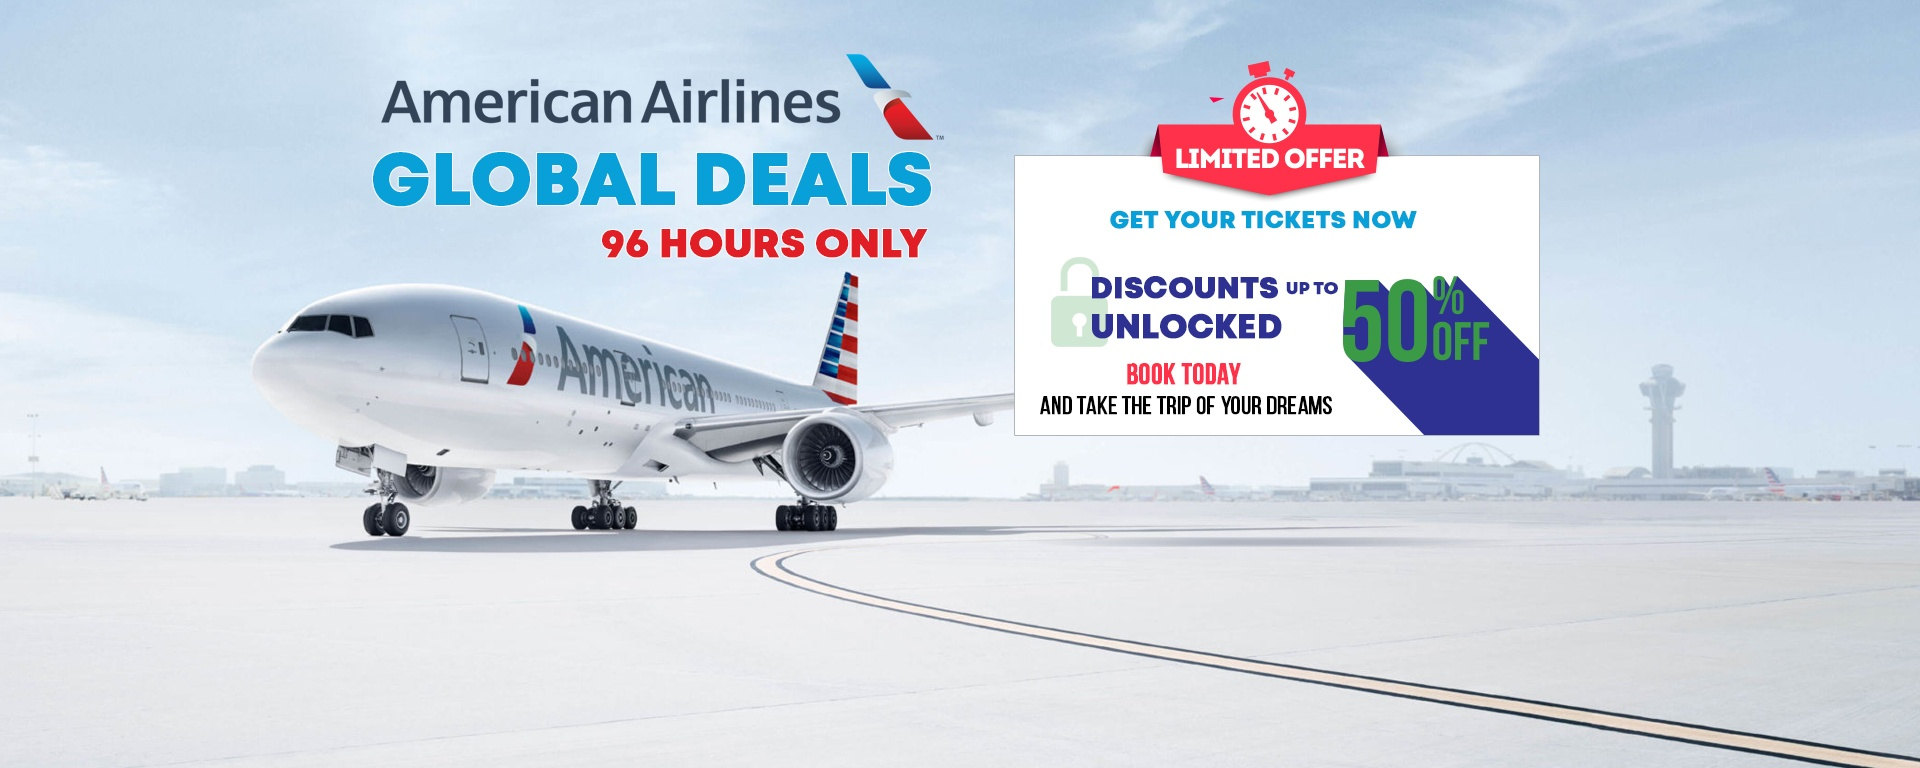 American Airlines Global Deals